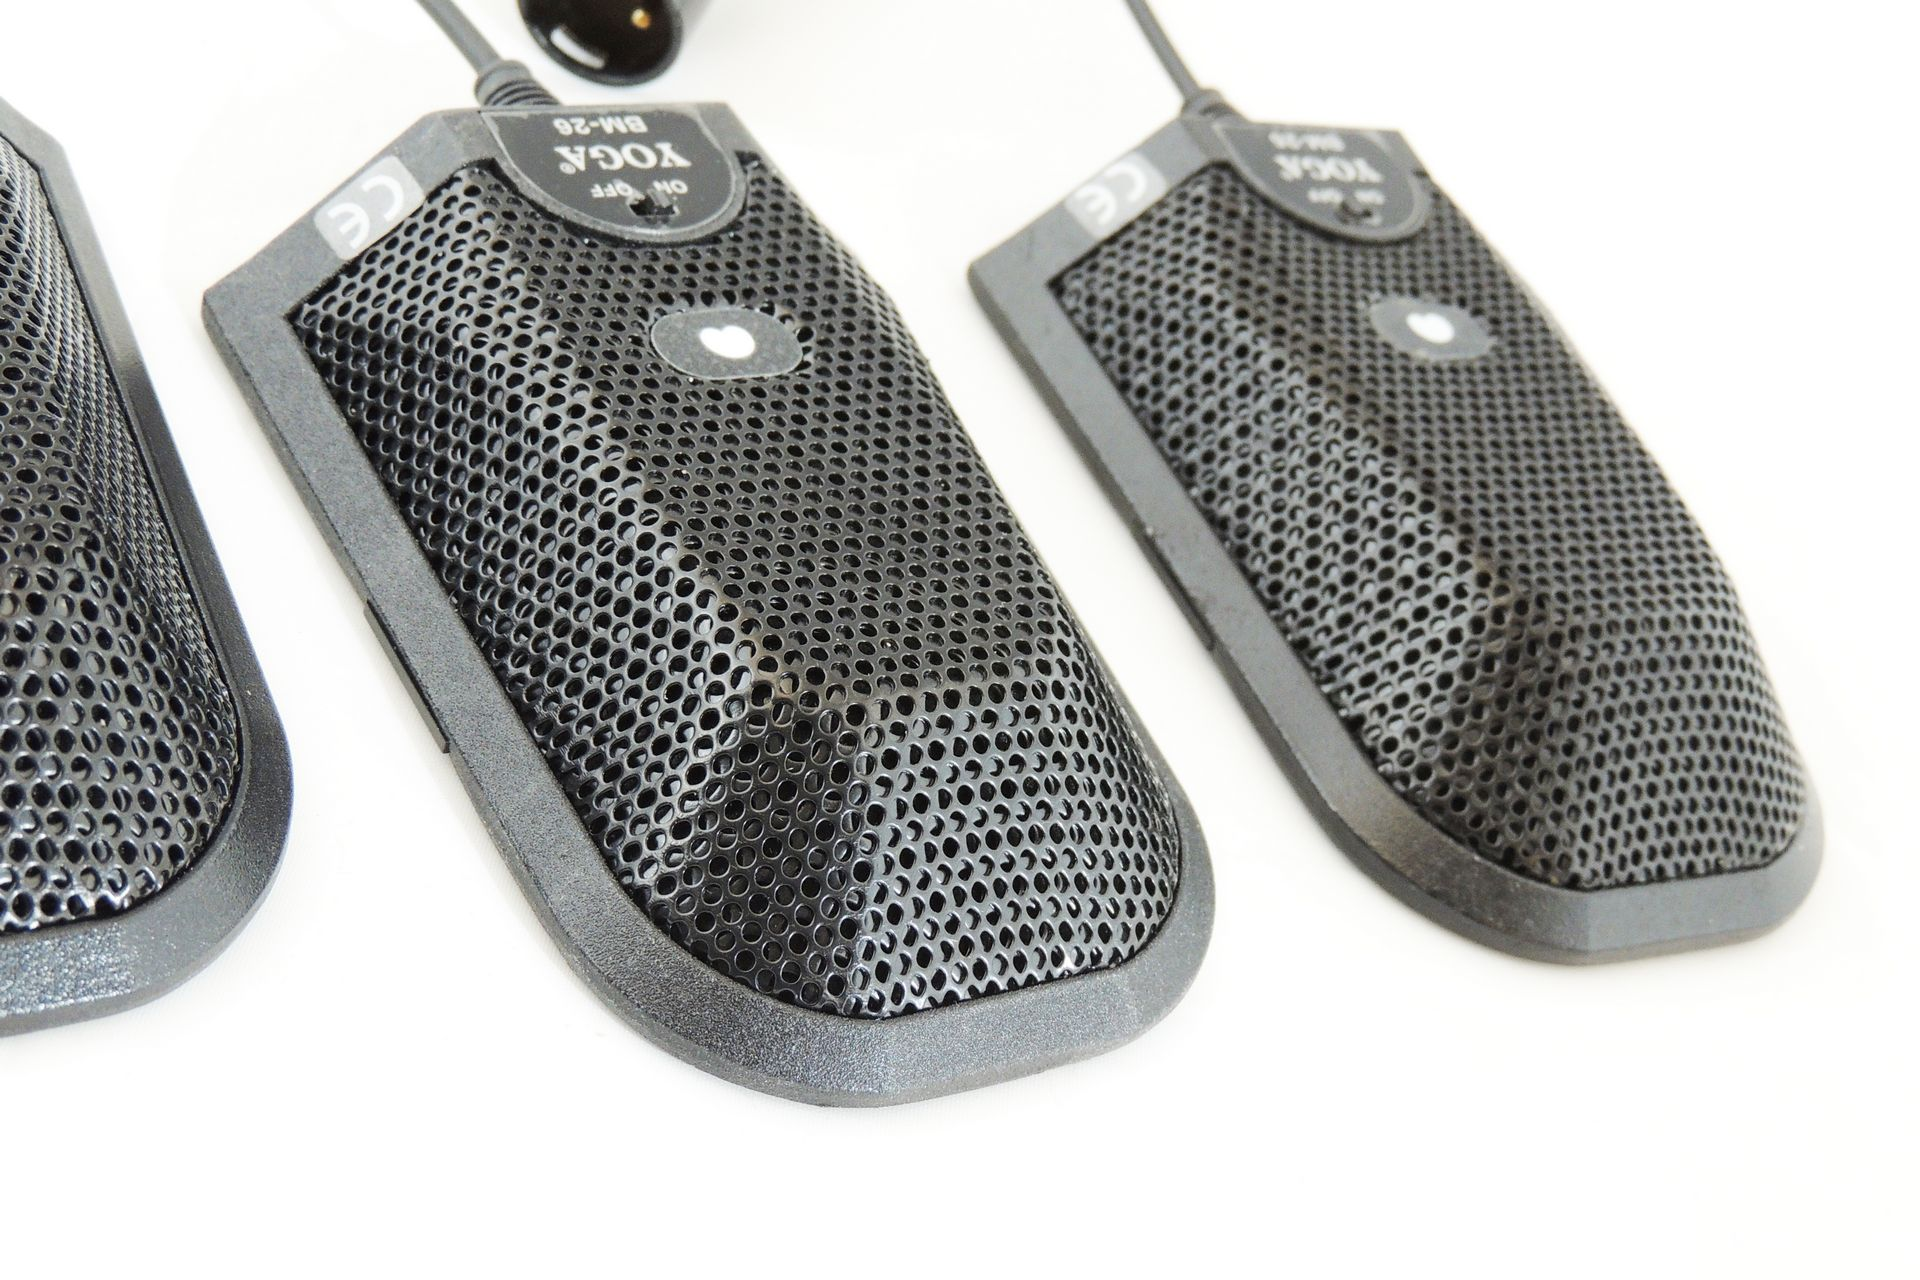 YOGA BM-26 BOUNDARY 3 x LAYER MICROPHONES for sale at Plasma Music